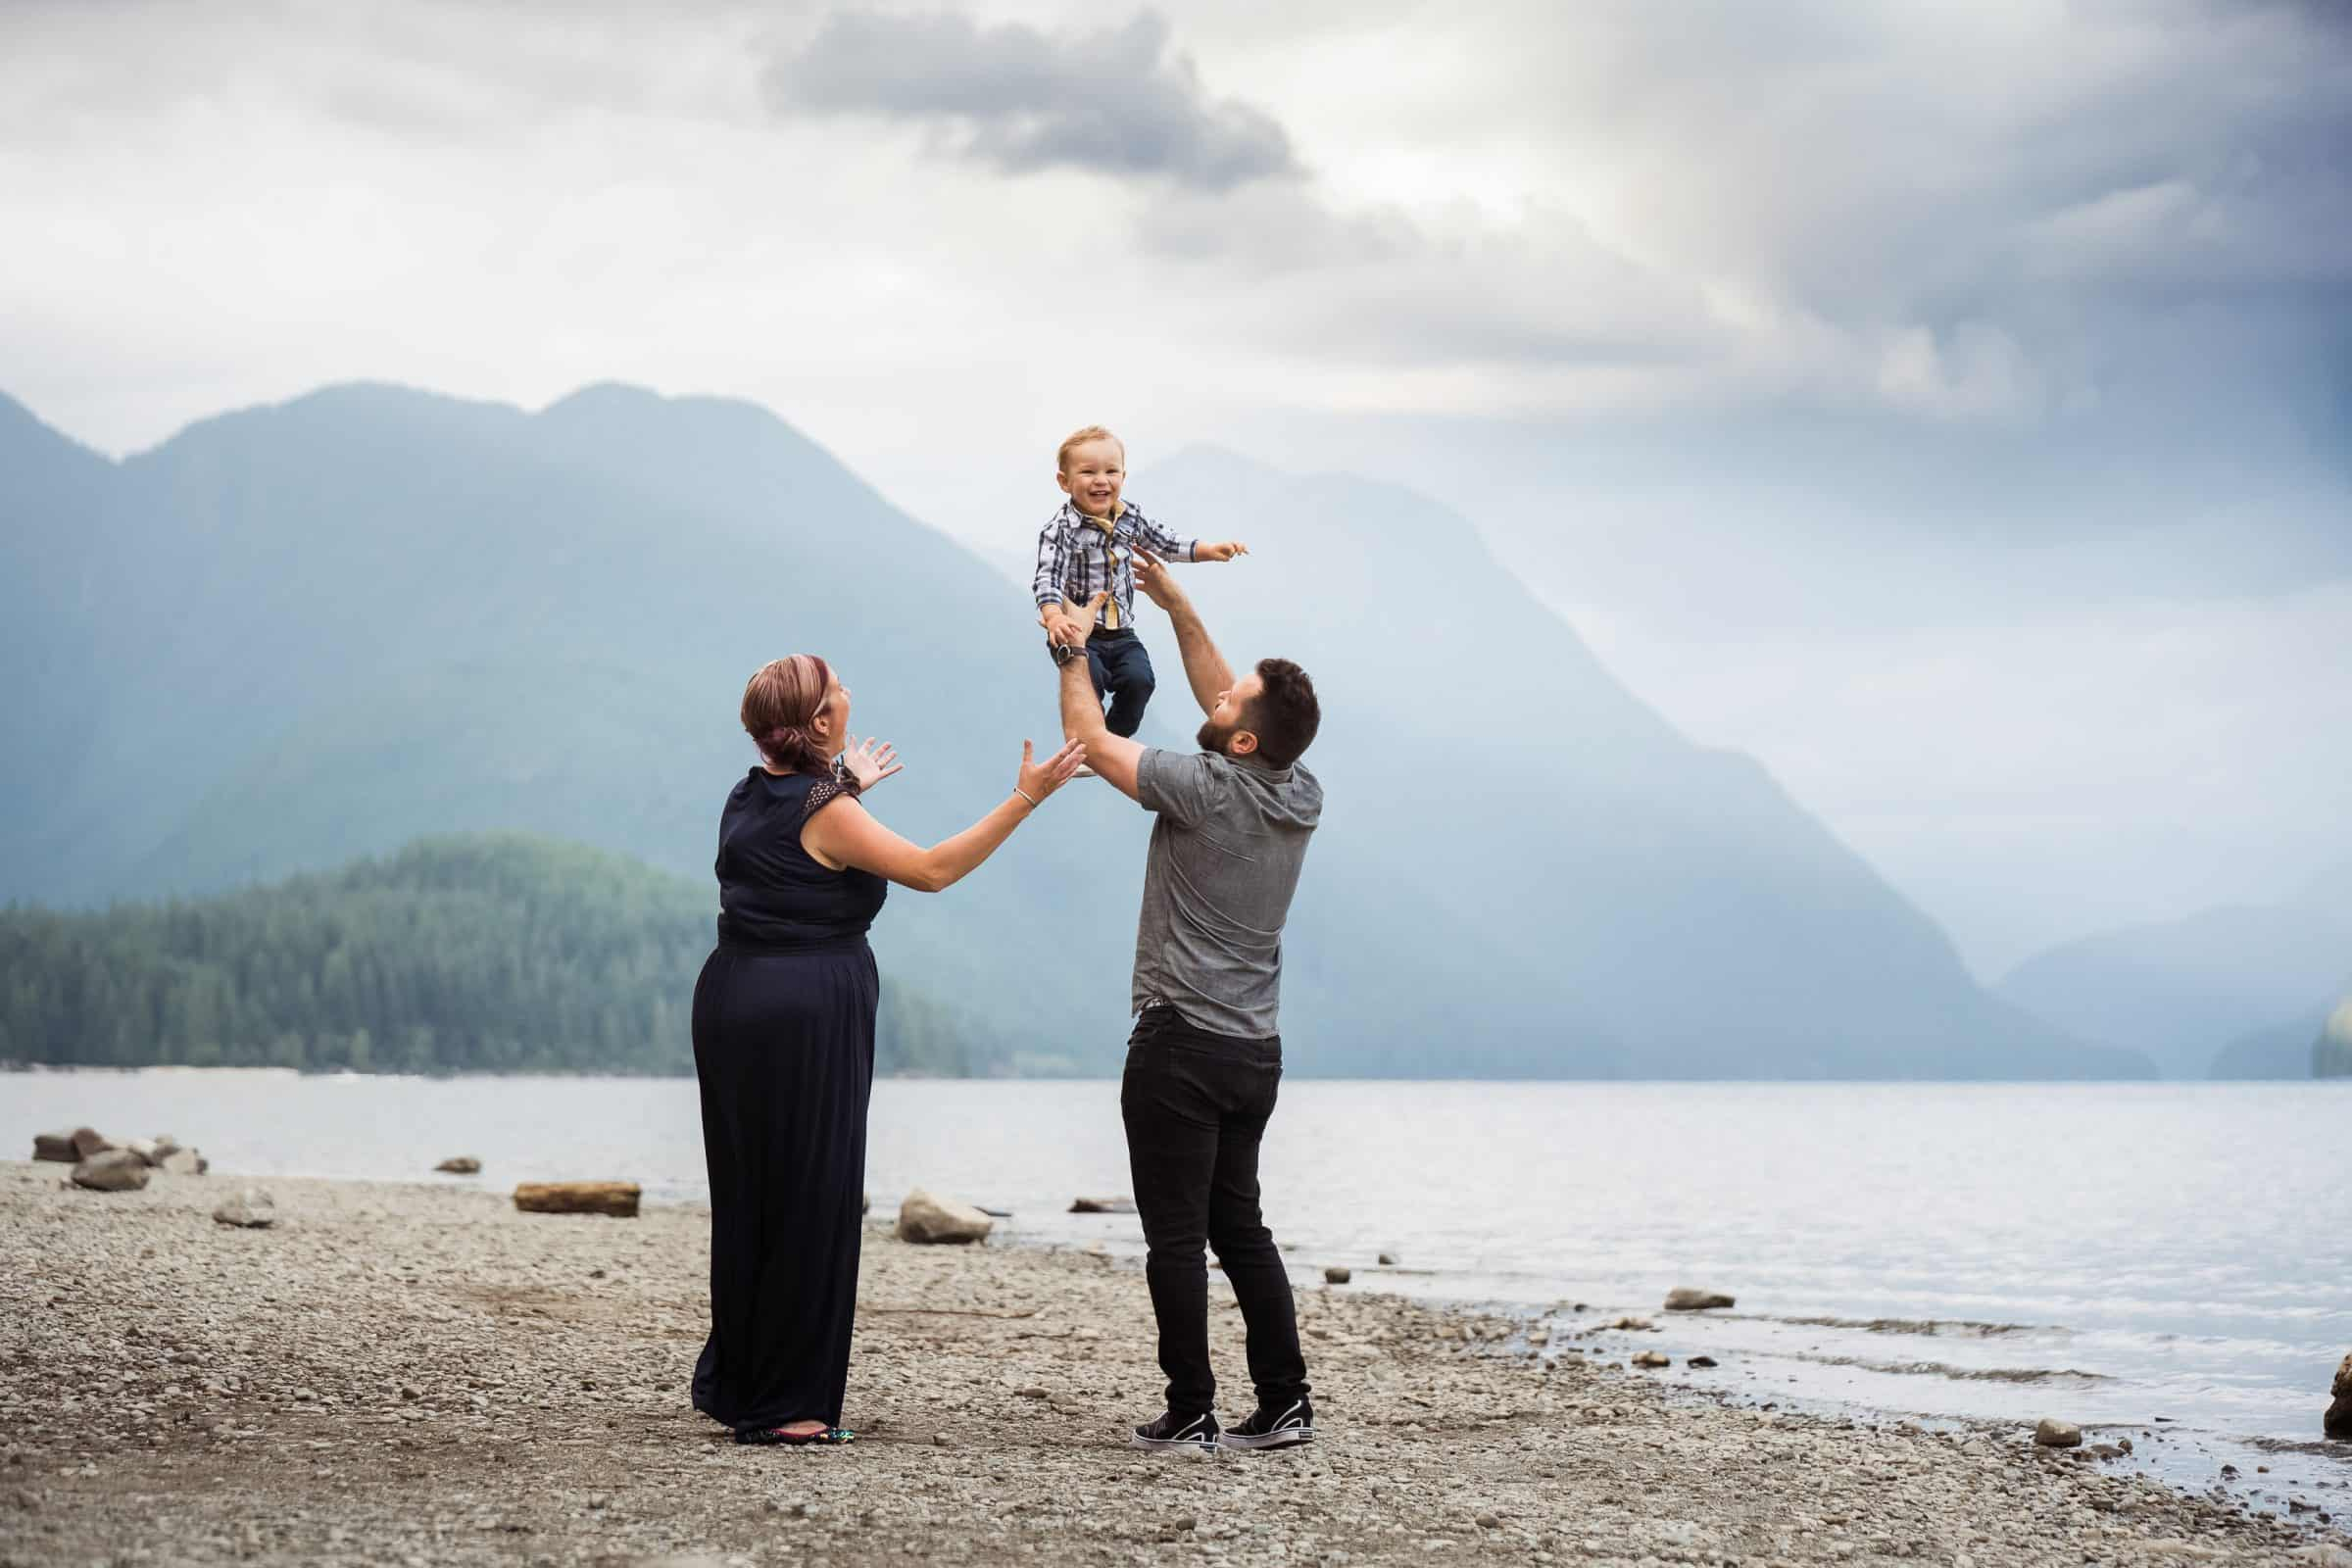 dad throwing little boy in arm beside mom with lake and mountains in the background